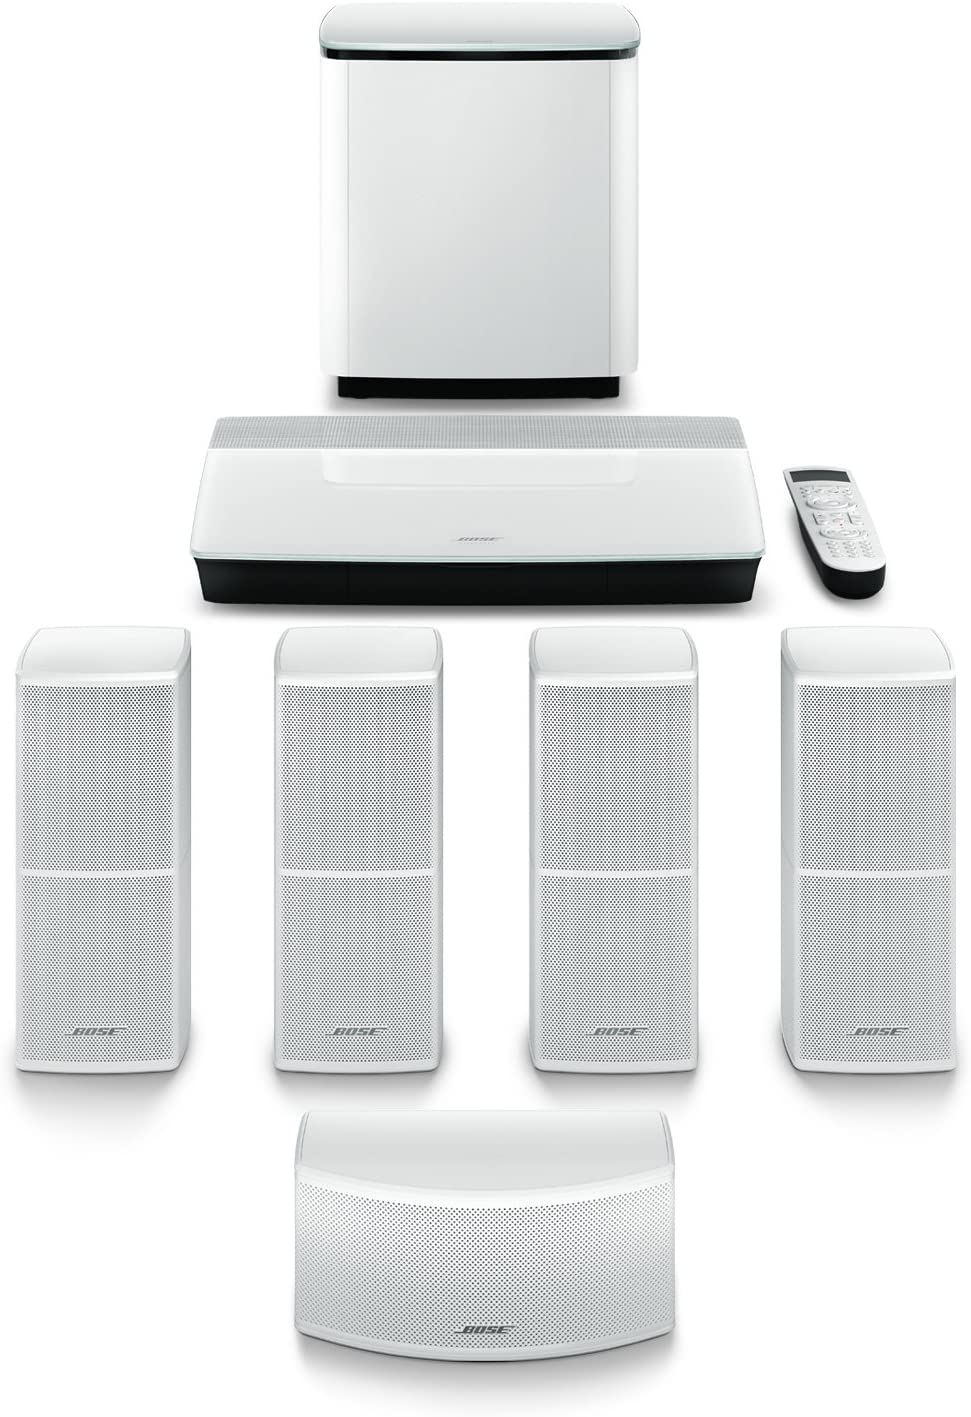 Bose Lifestyle 600 Home Entertainment System, works with Alexa - White